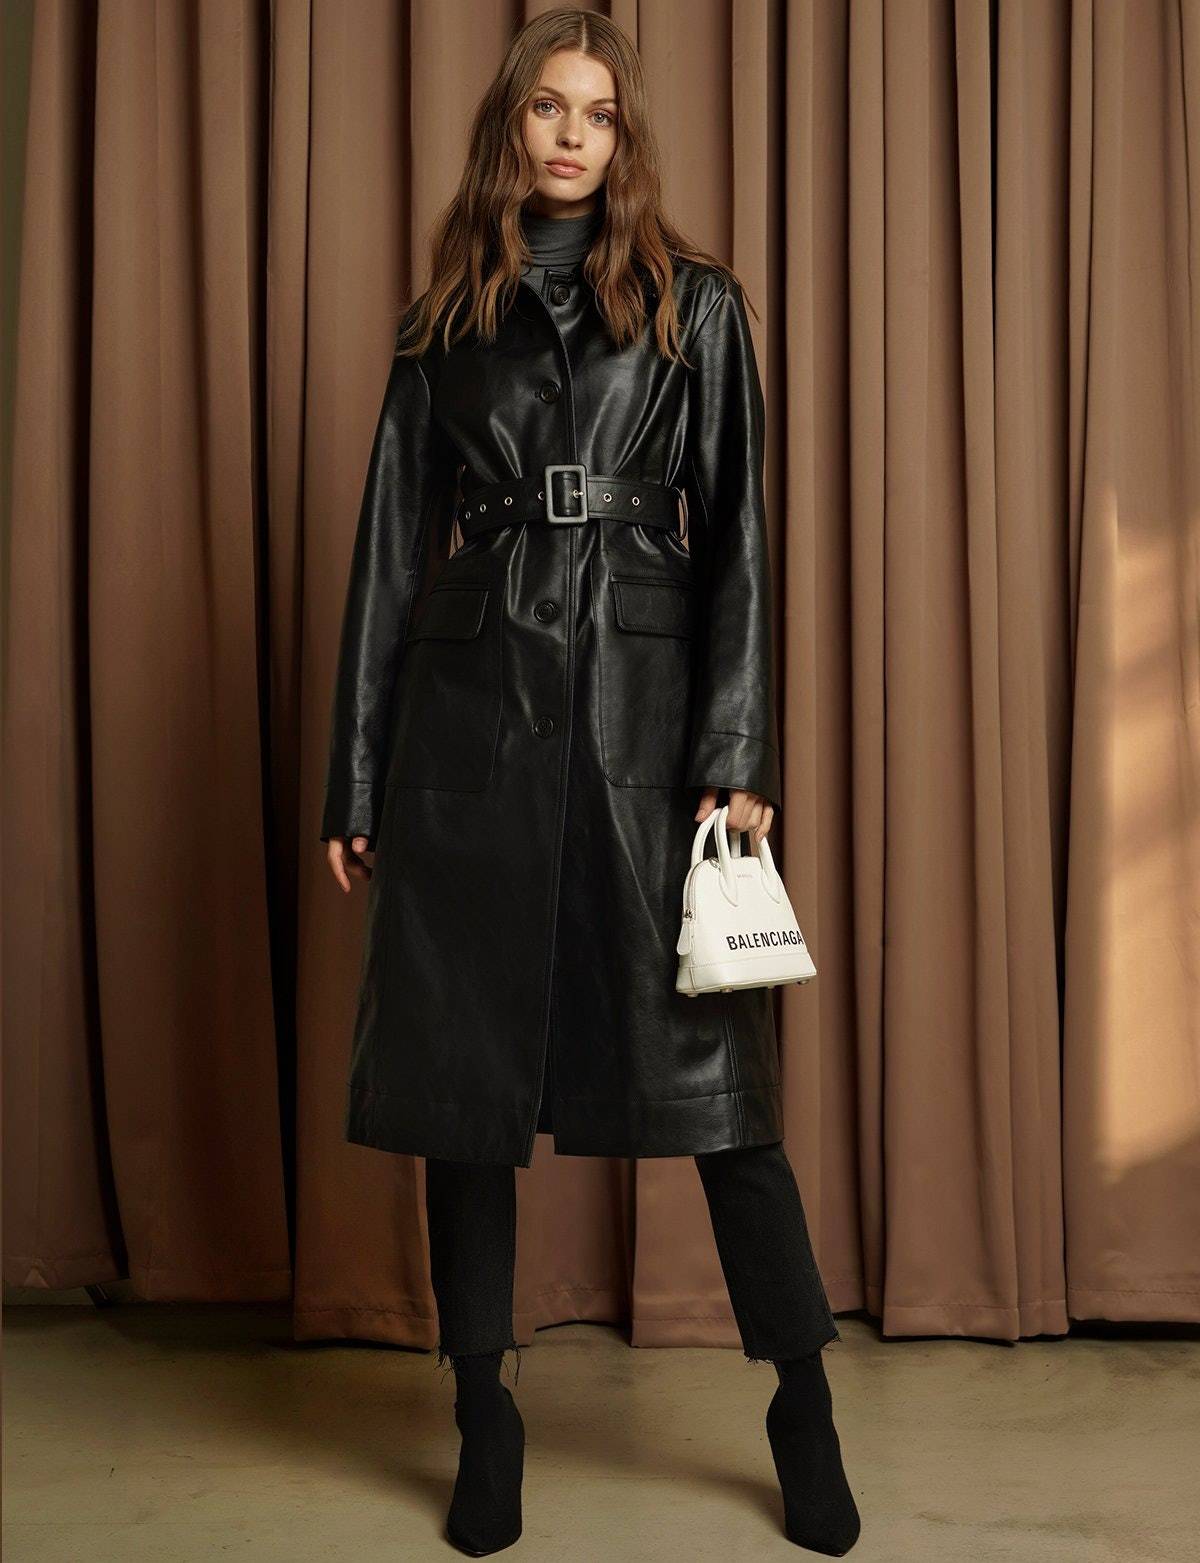 730cbb1eb6b0 The Leather Trench Coat Trend Should Be Your Go-To This Winter